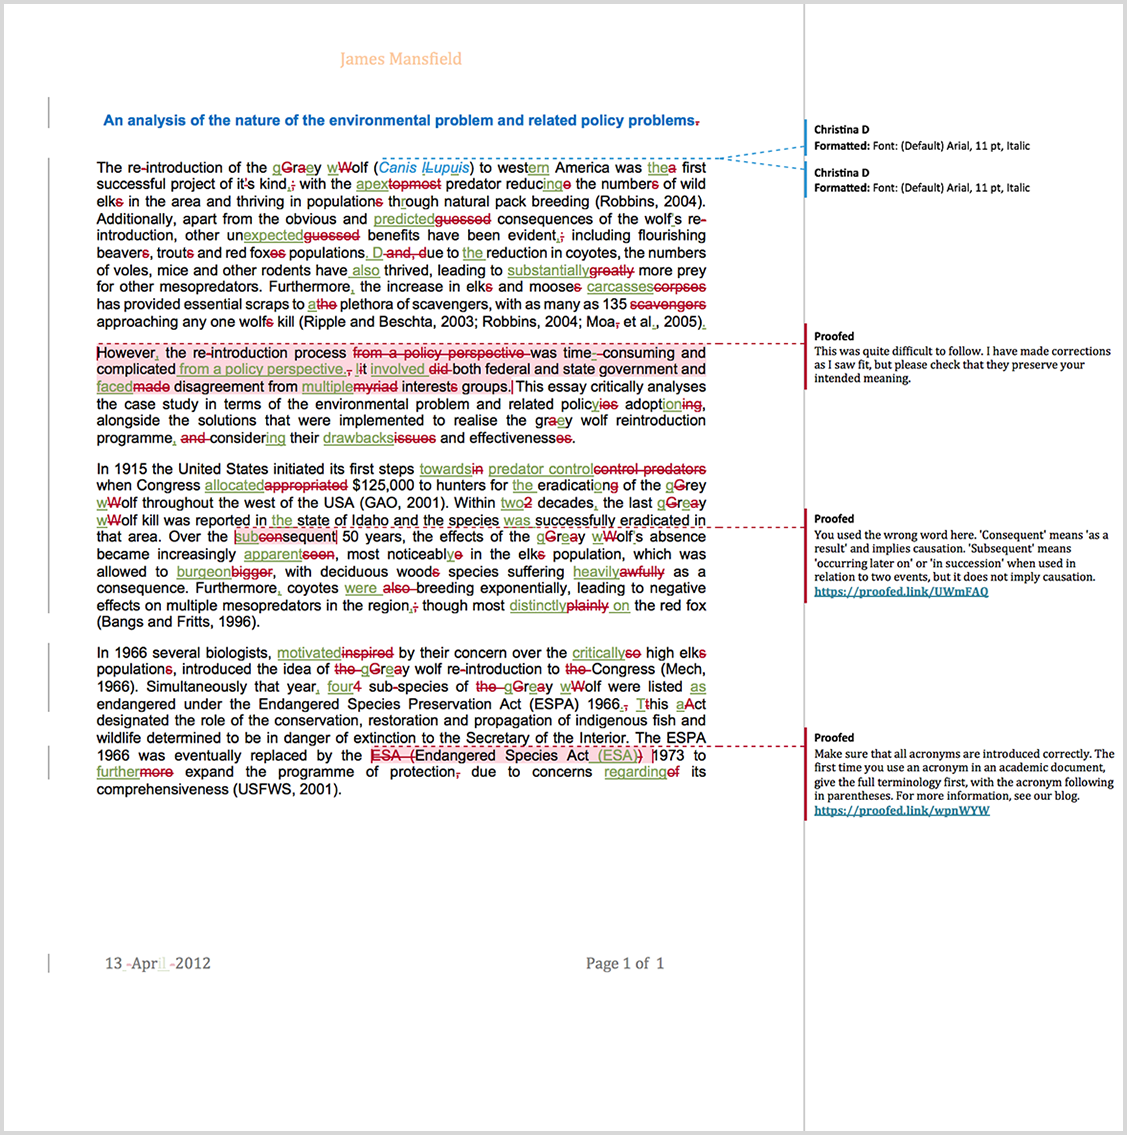 Assignment proofreading example after editing